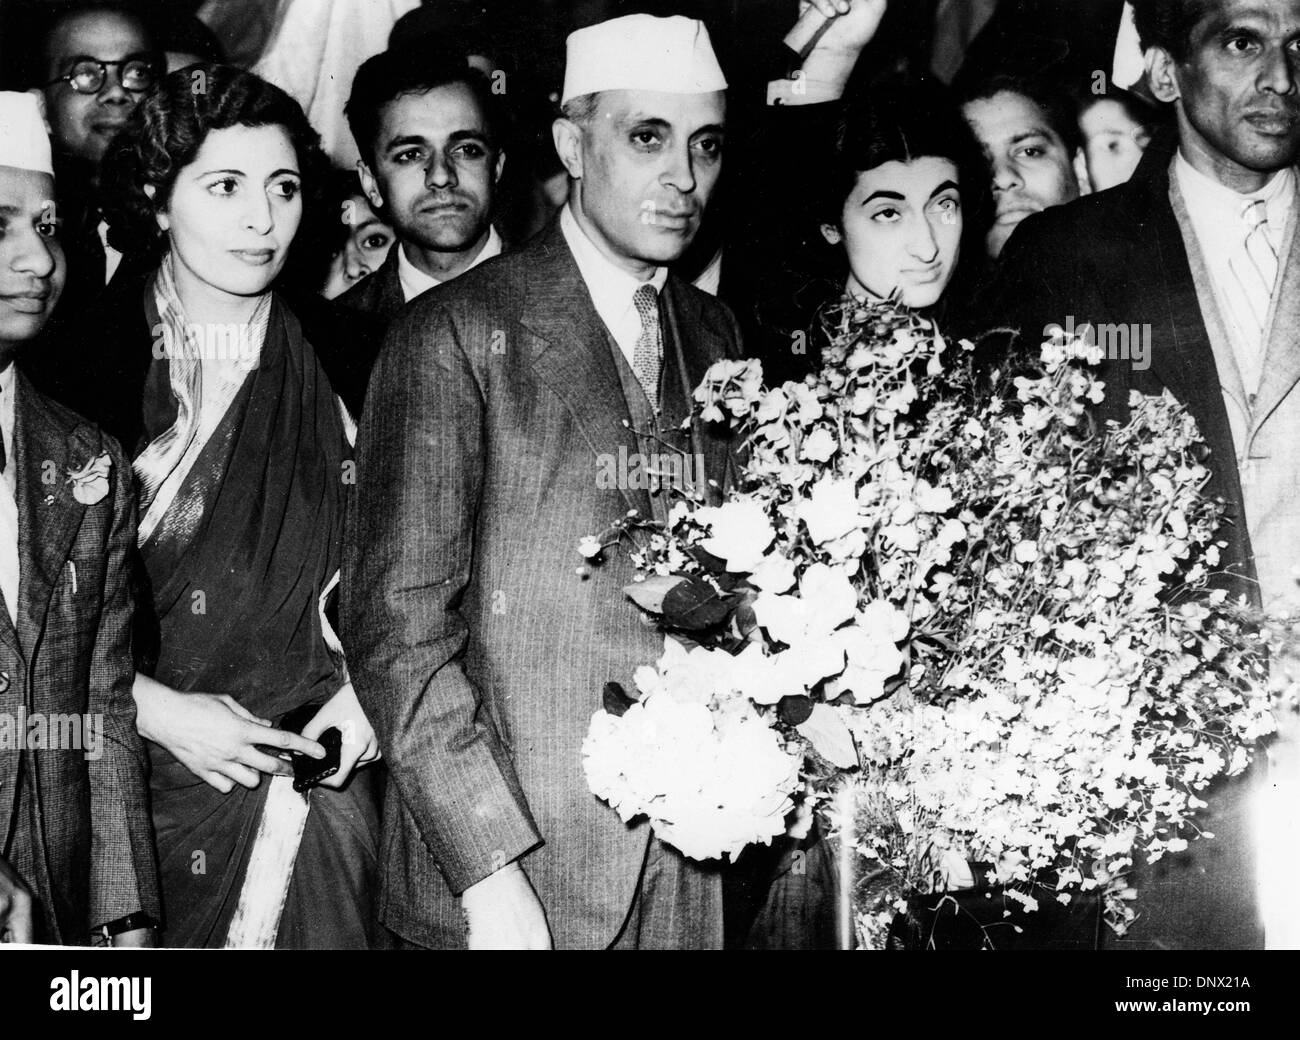 June 23, 1938 - Victoria, Newbury, U.K. - Pandit JAWAHARLAL NEHRU former President of the Indian Congress Party and his daughter Prime Minister of India, INDIRA GANDHI at a party. (Credit Image: © KEYSTONE Pictures USA/ZUMAPRESS.com) - Stock Image